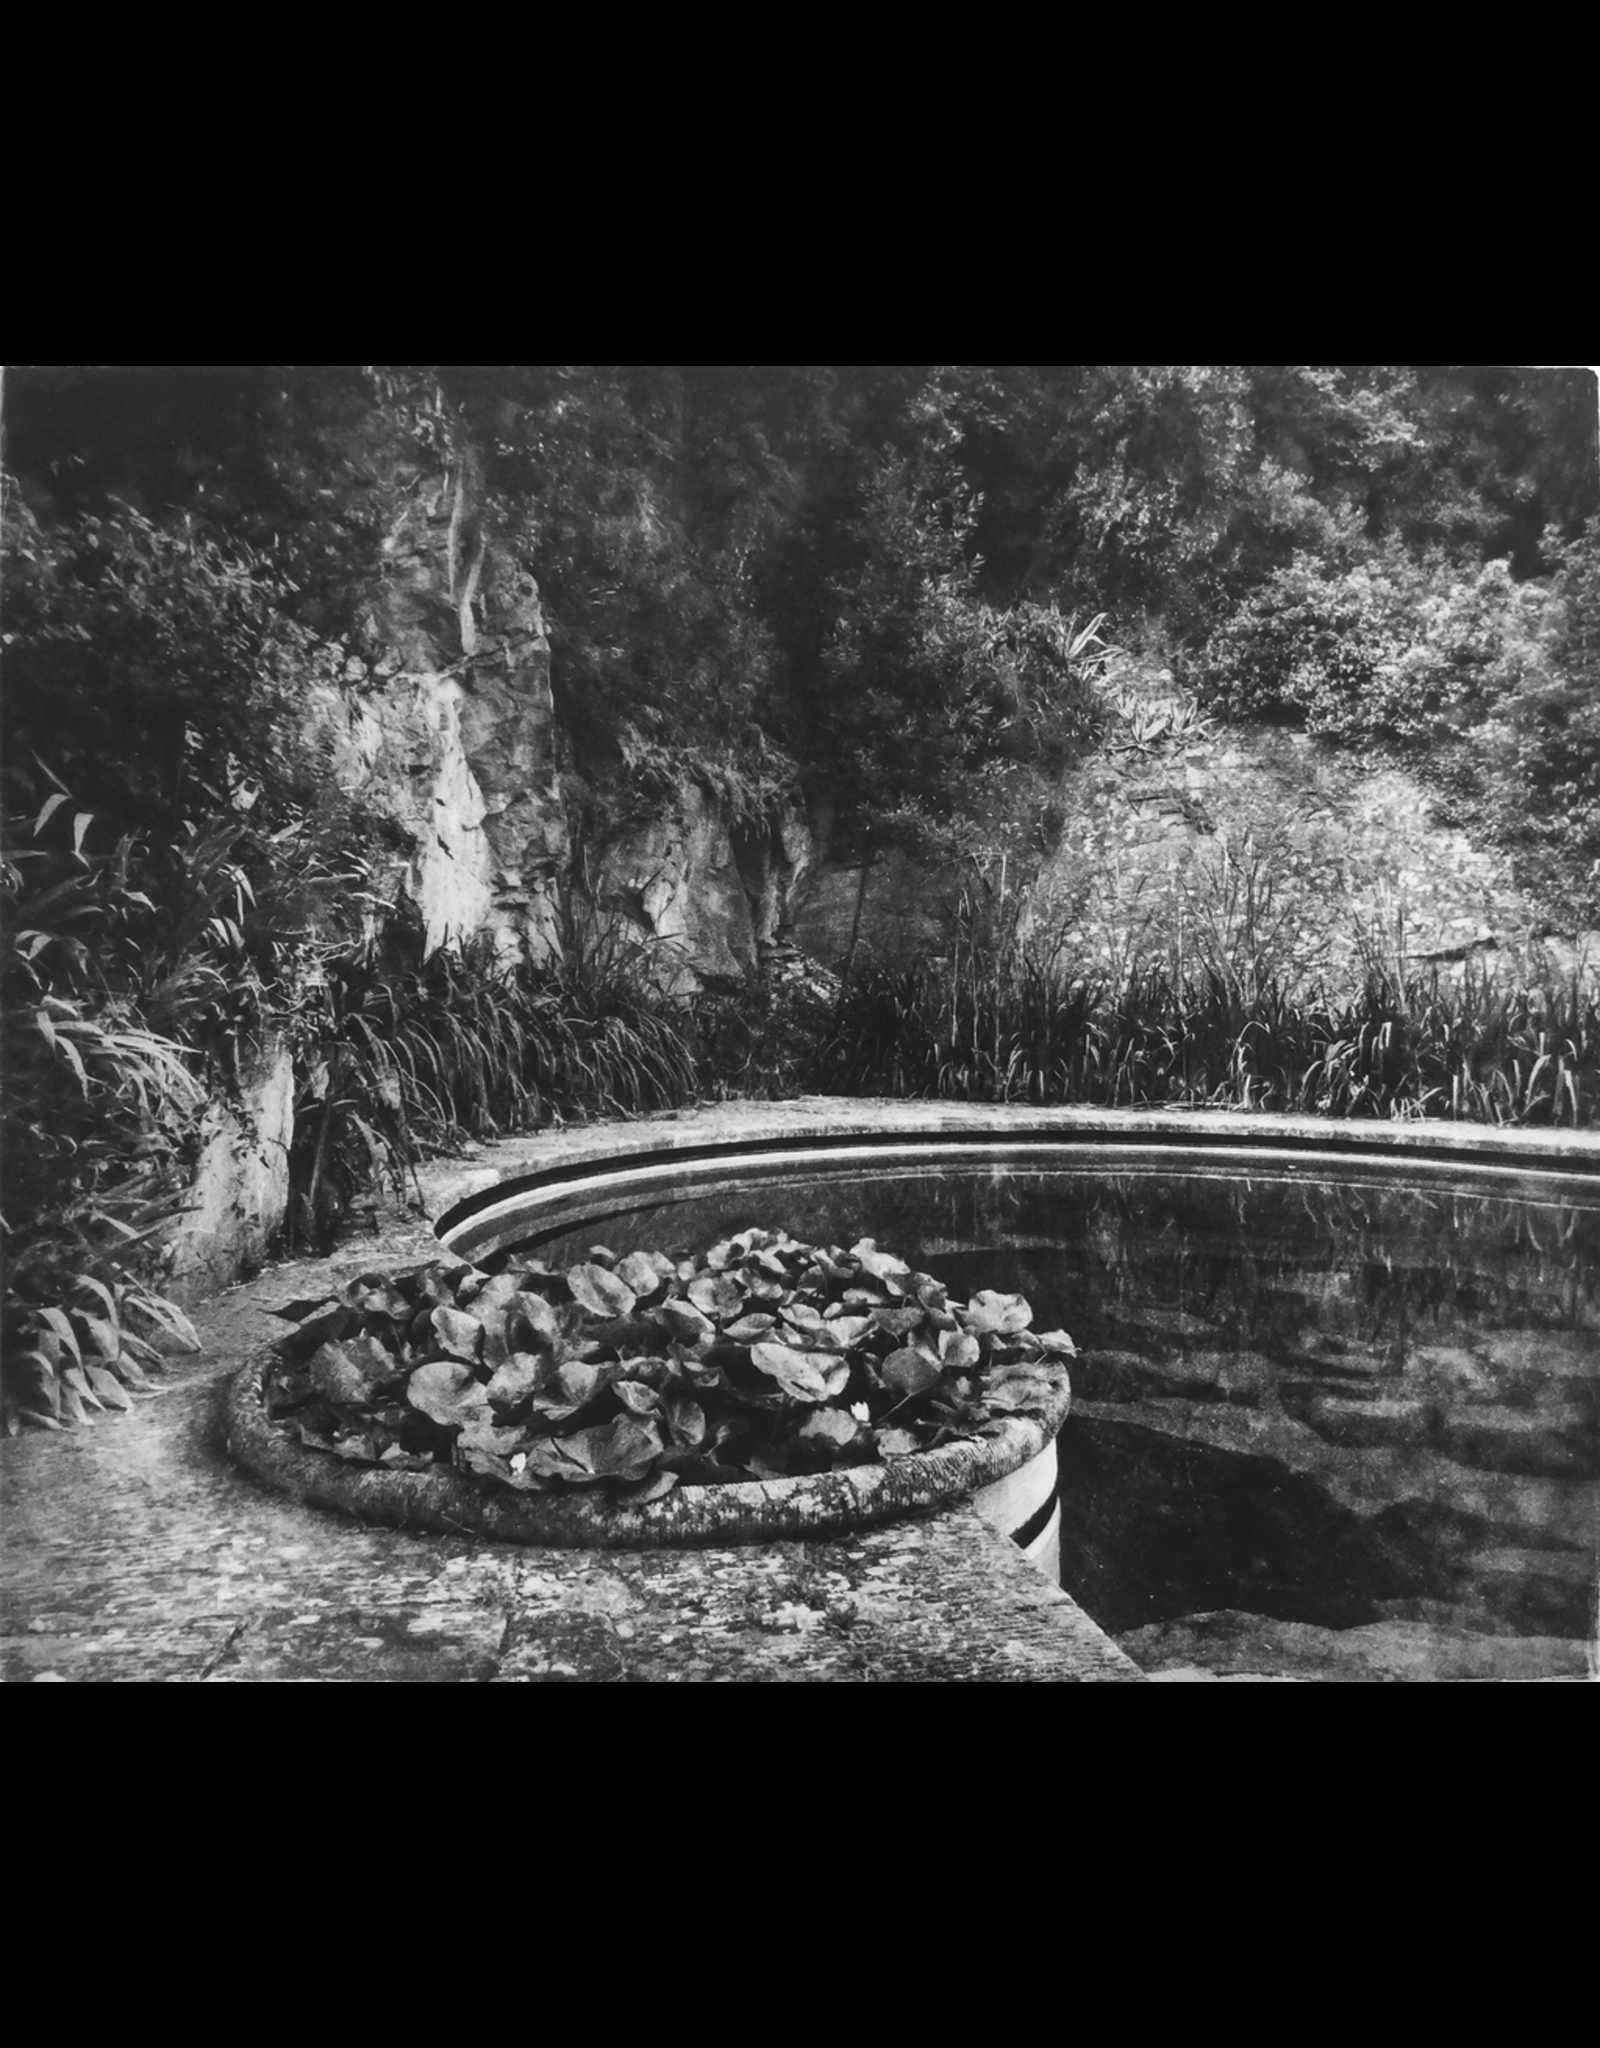 McLachlan, Ted Villa Fontanelle, Florence - Lotus Pool, Ted McLachlan